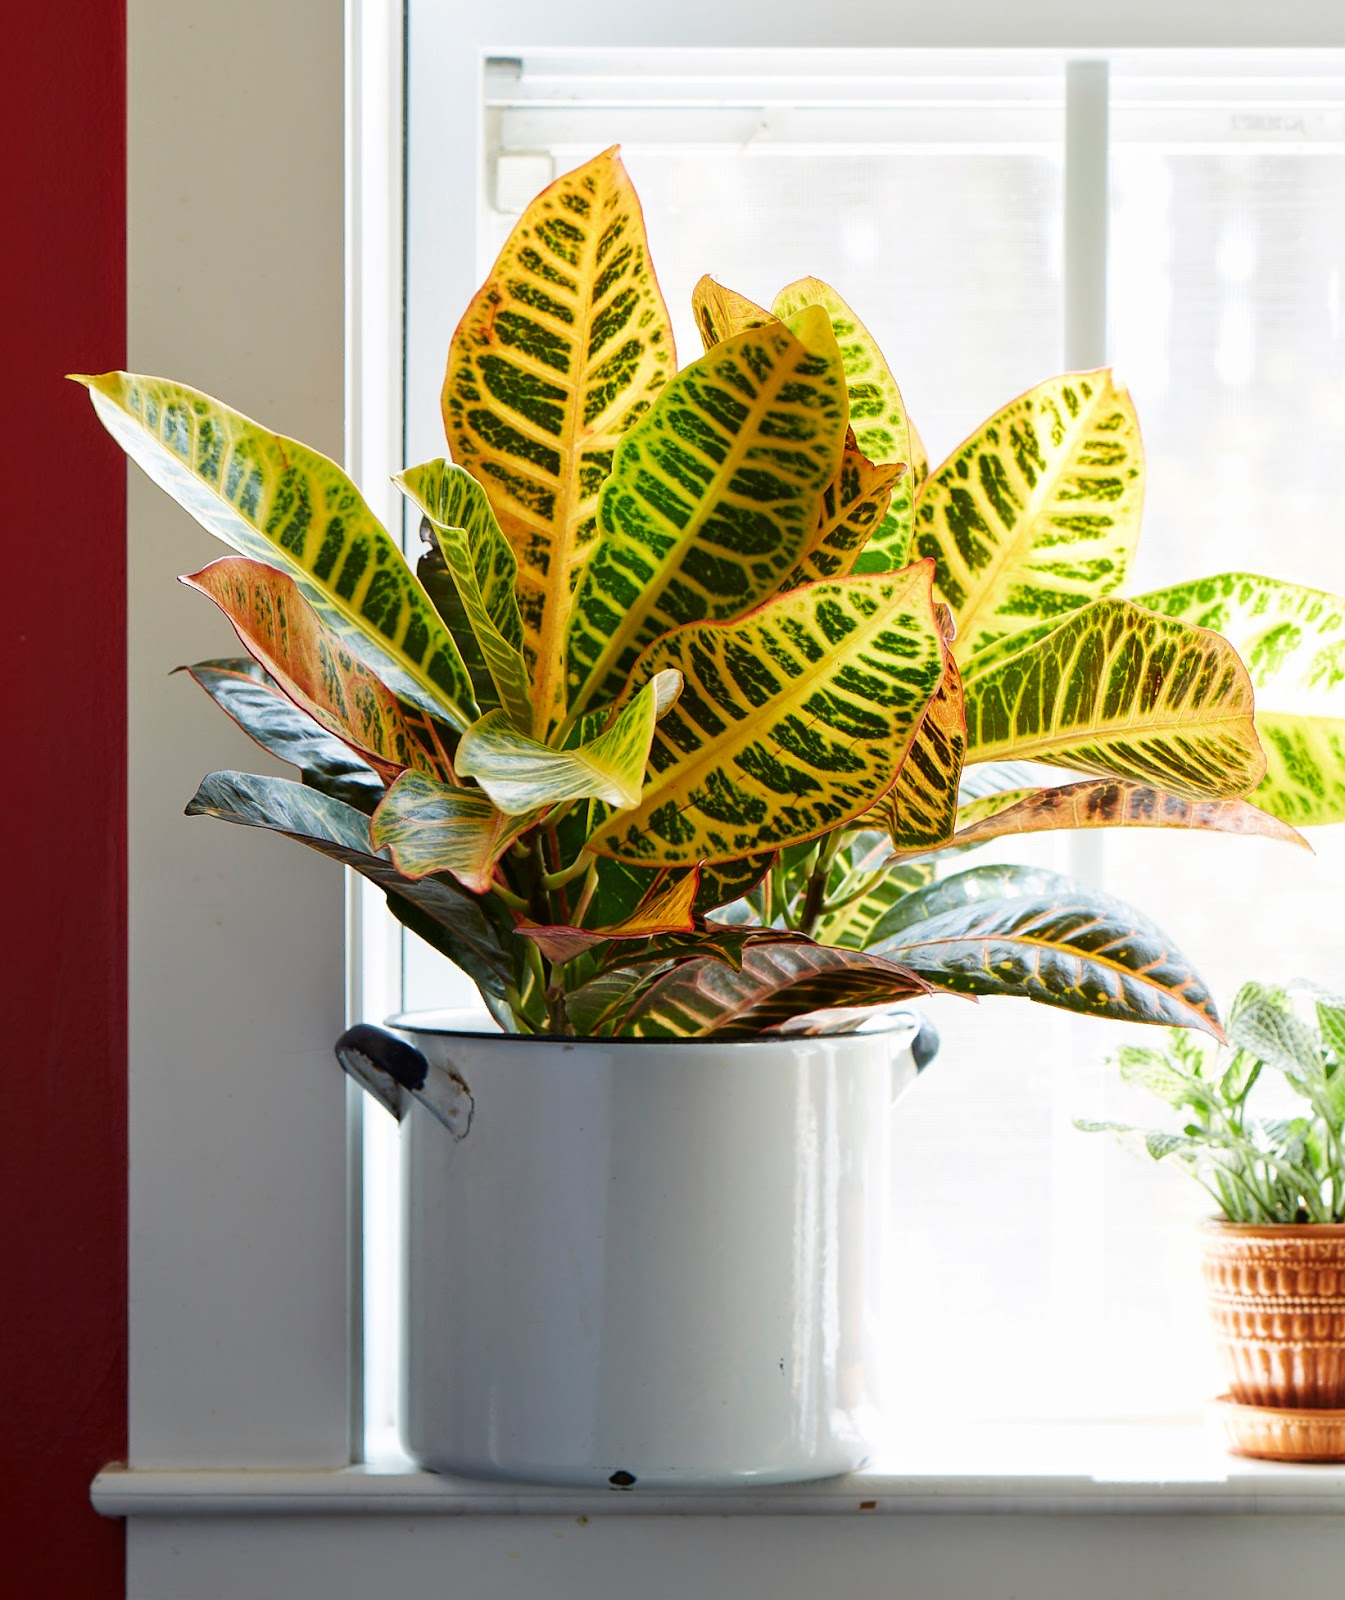 Emerging research also indicates that certain varieties of indoor  houseplants work best to help cleanse interior spaces of indoor pollutants  and improve ...